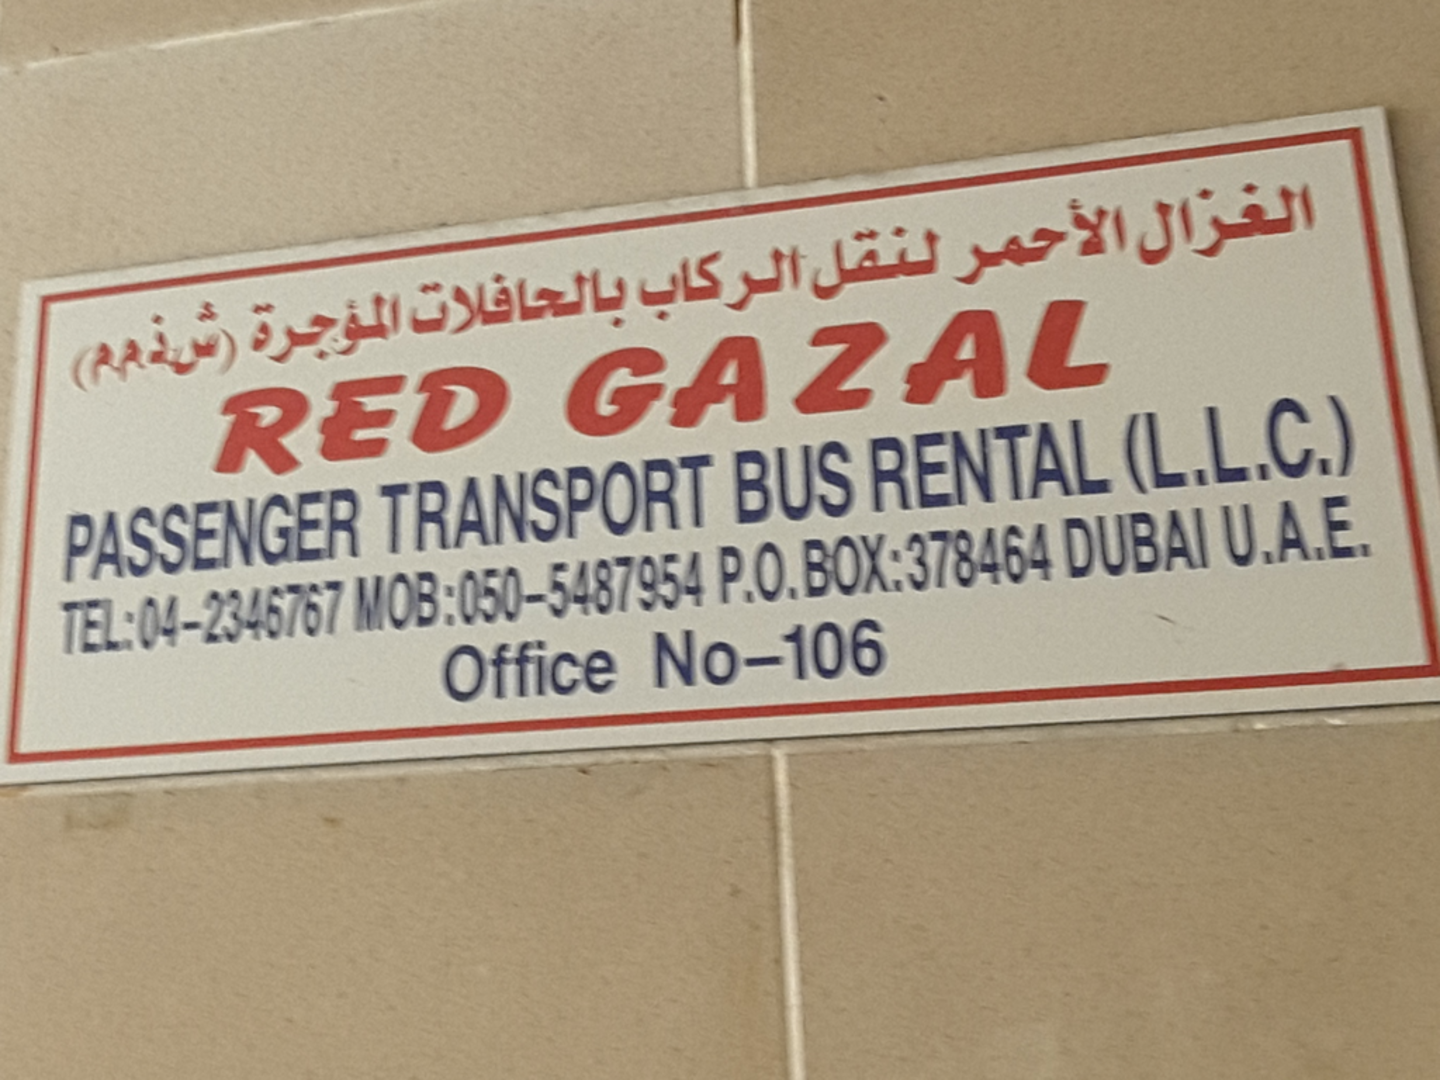 HiDubai-business-red-gazal-passenger-transport-bus-rental-transport-vehicle-services-heavy-vehicles-rentals-naif-dubai-2